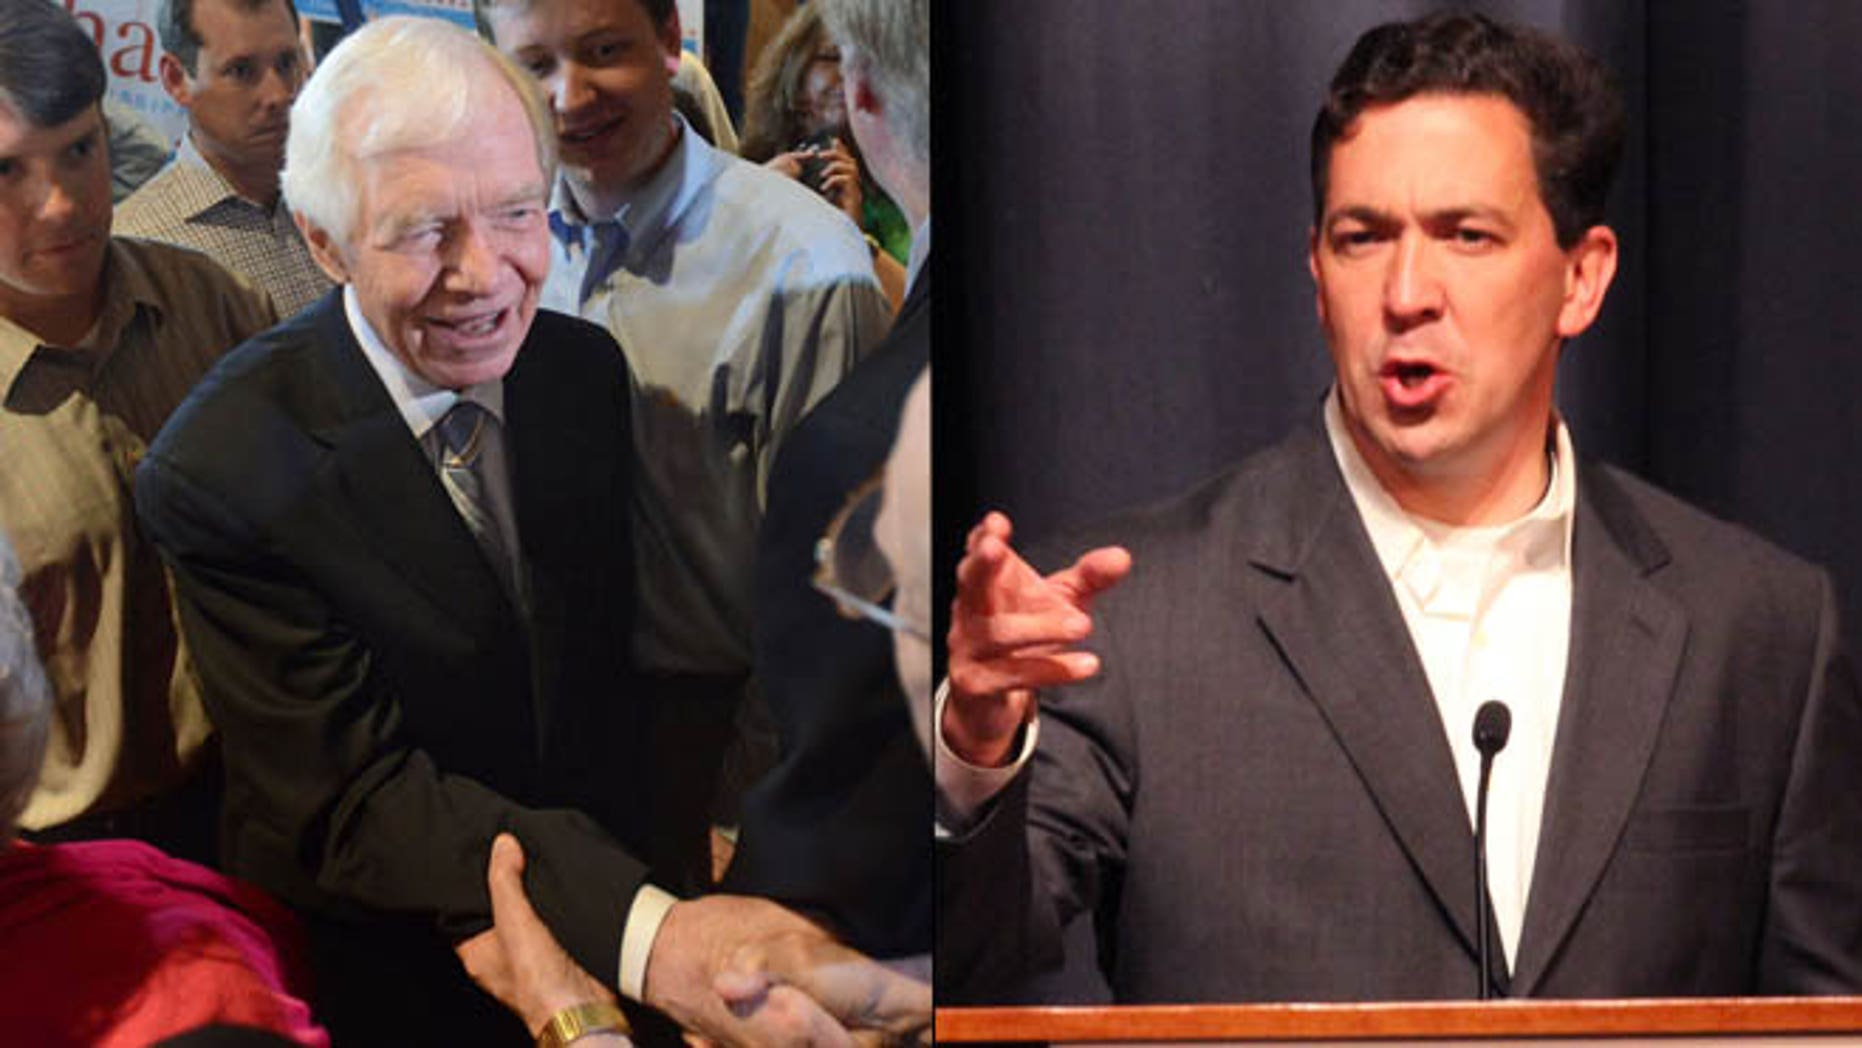 Show here are Mississippi Sen. Thad Cochran, left, and primary challenger Chris McDaniel.